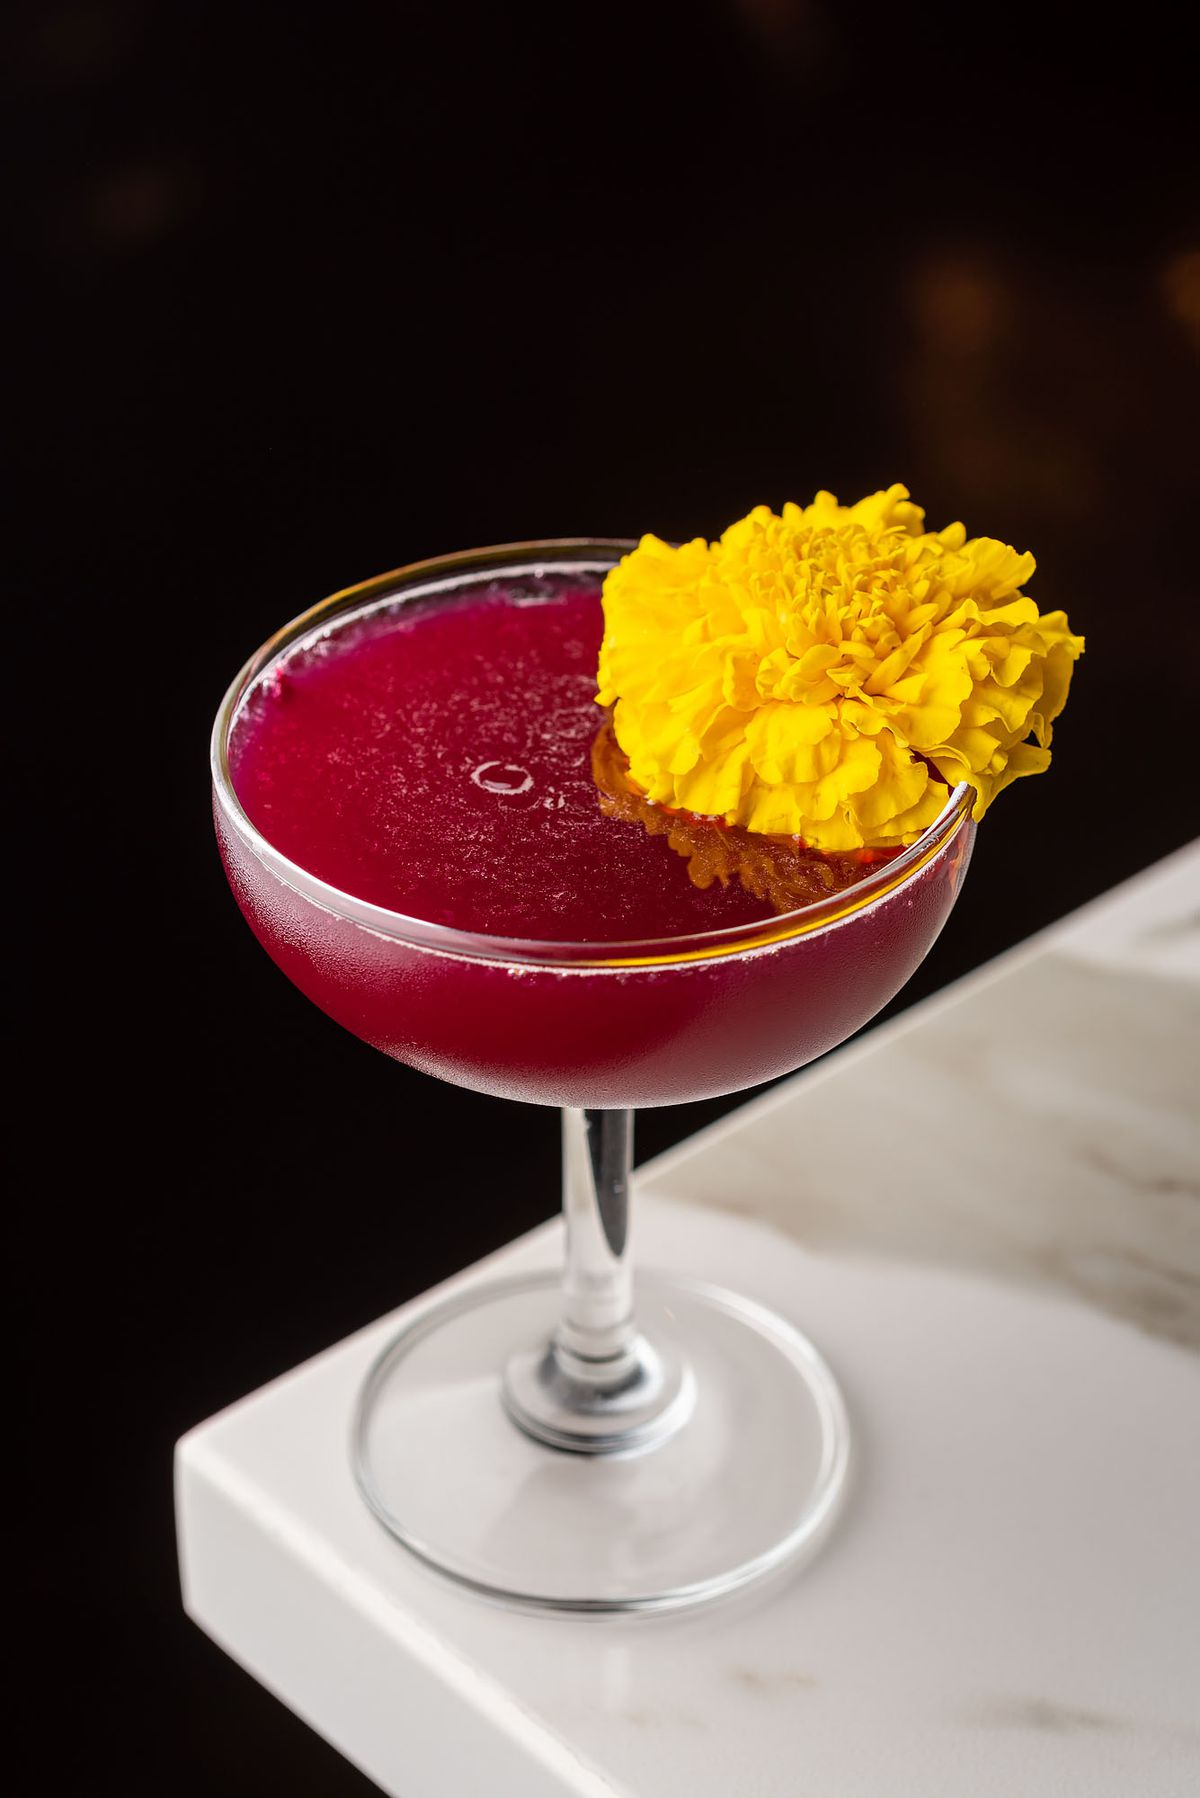 A deep red cocktail with a yellow flower sitting on the rim.